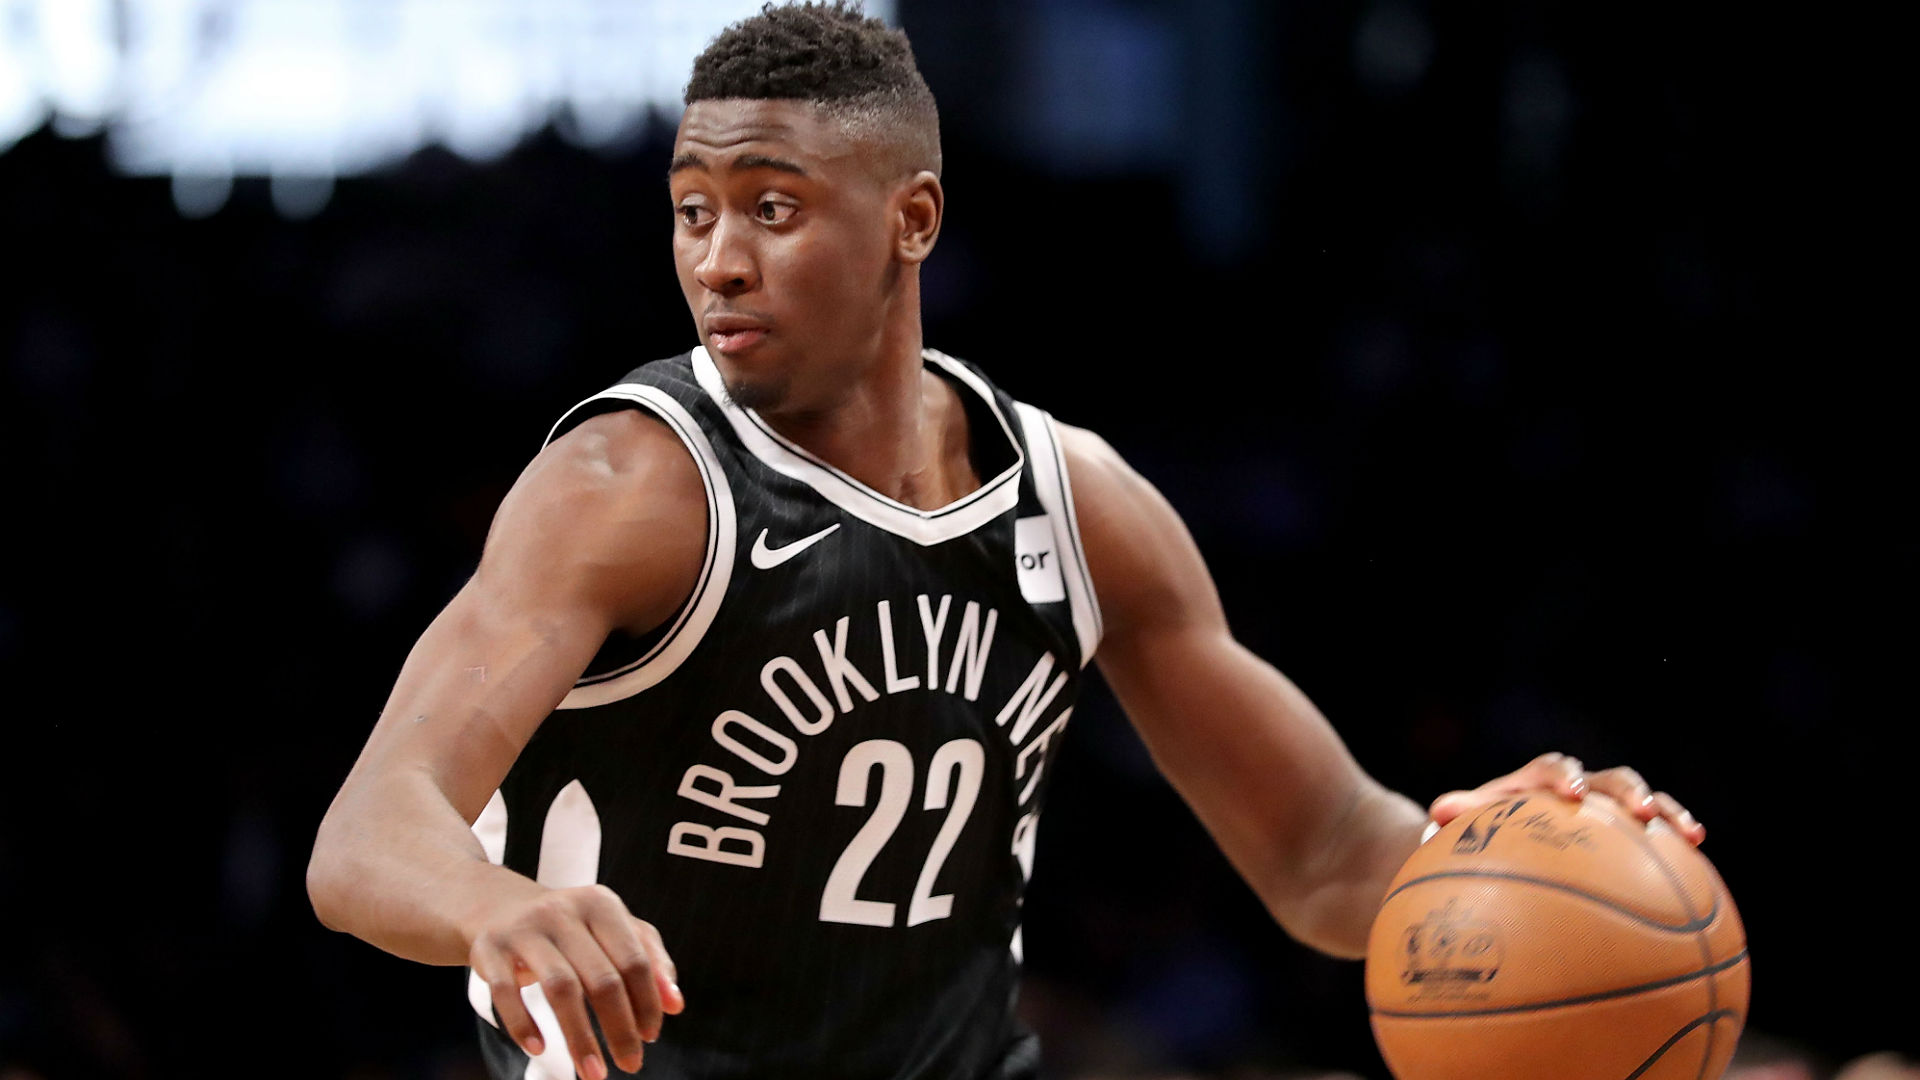 Nets guard LeVert won't need surgery for dislocated foot